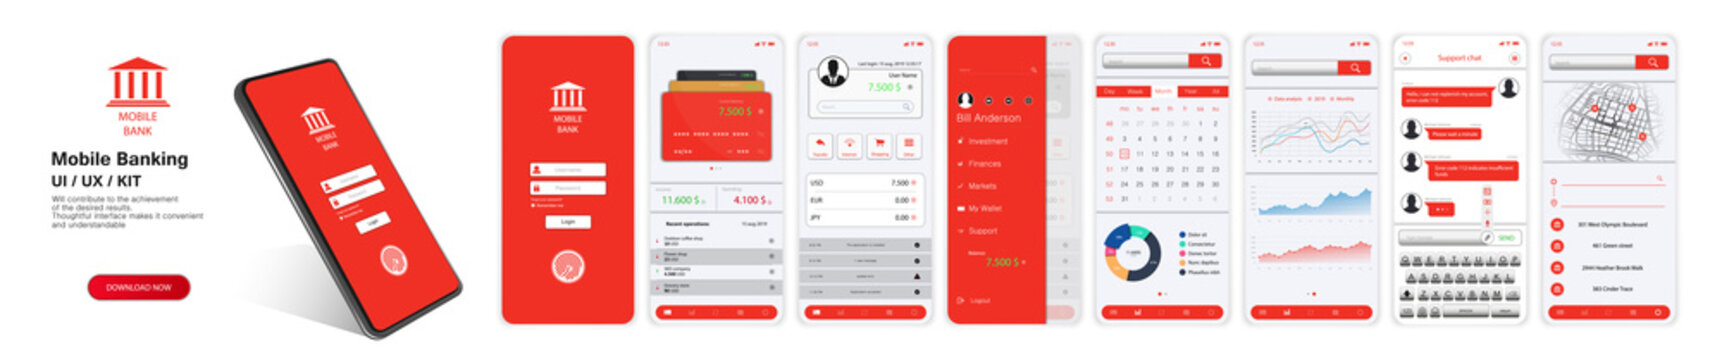 Design Mobile Banking App. UI, UX, KIT. Mockups screens for mobile banking or website with different GUI(Login, payment detailed data statistics, money transfers and transactions, chat support, map)